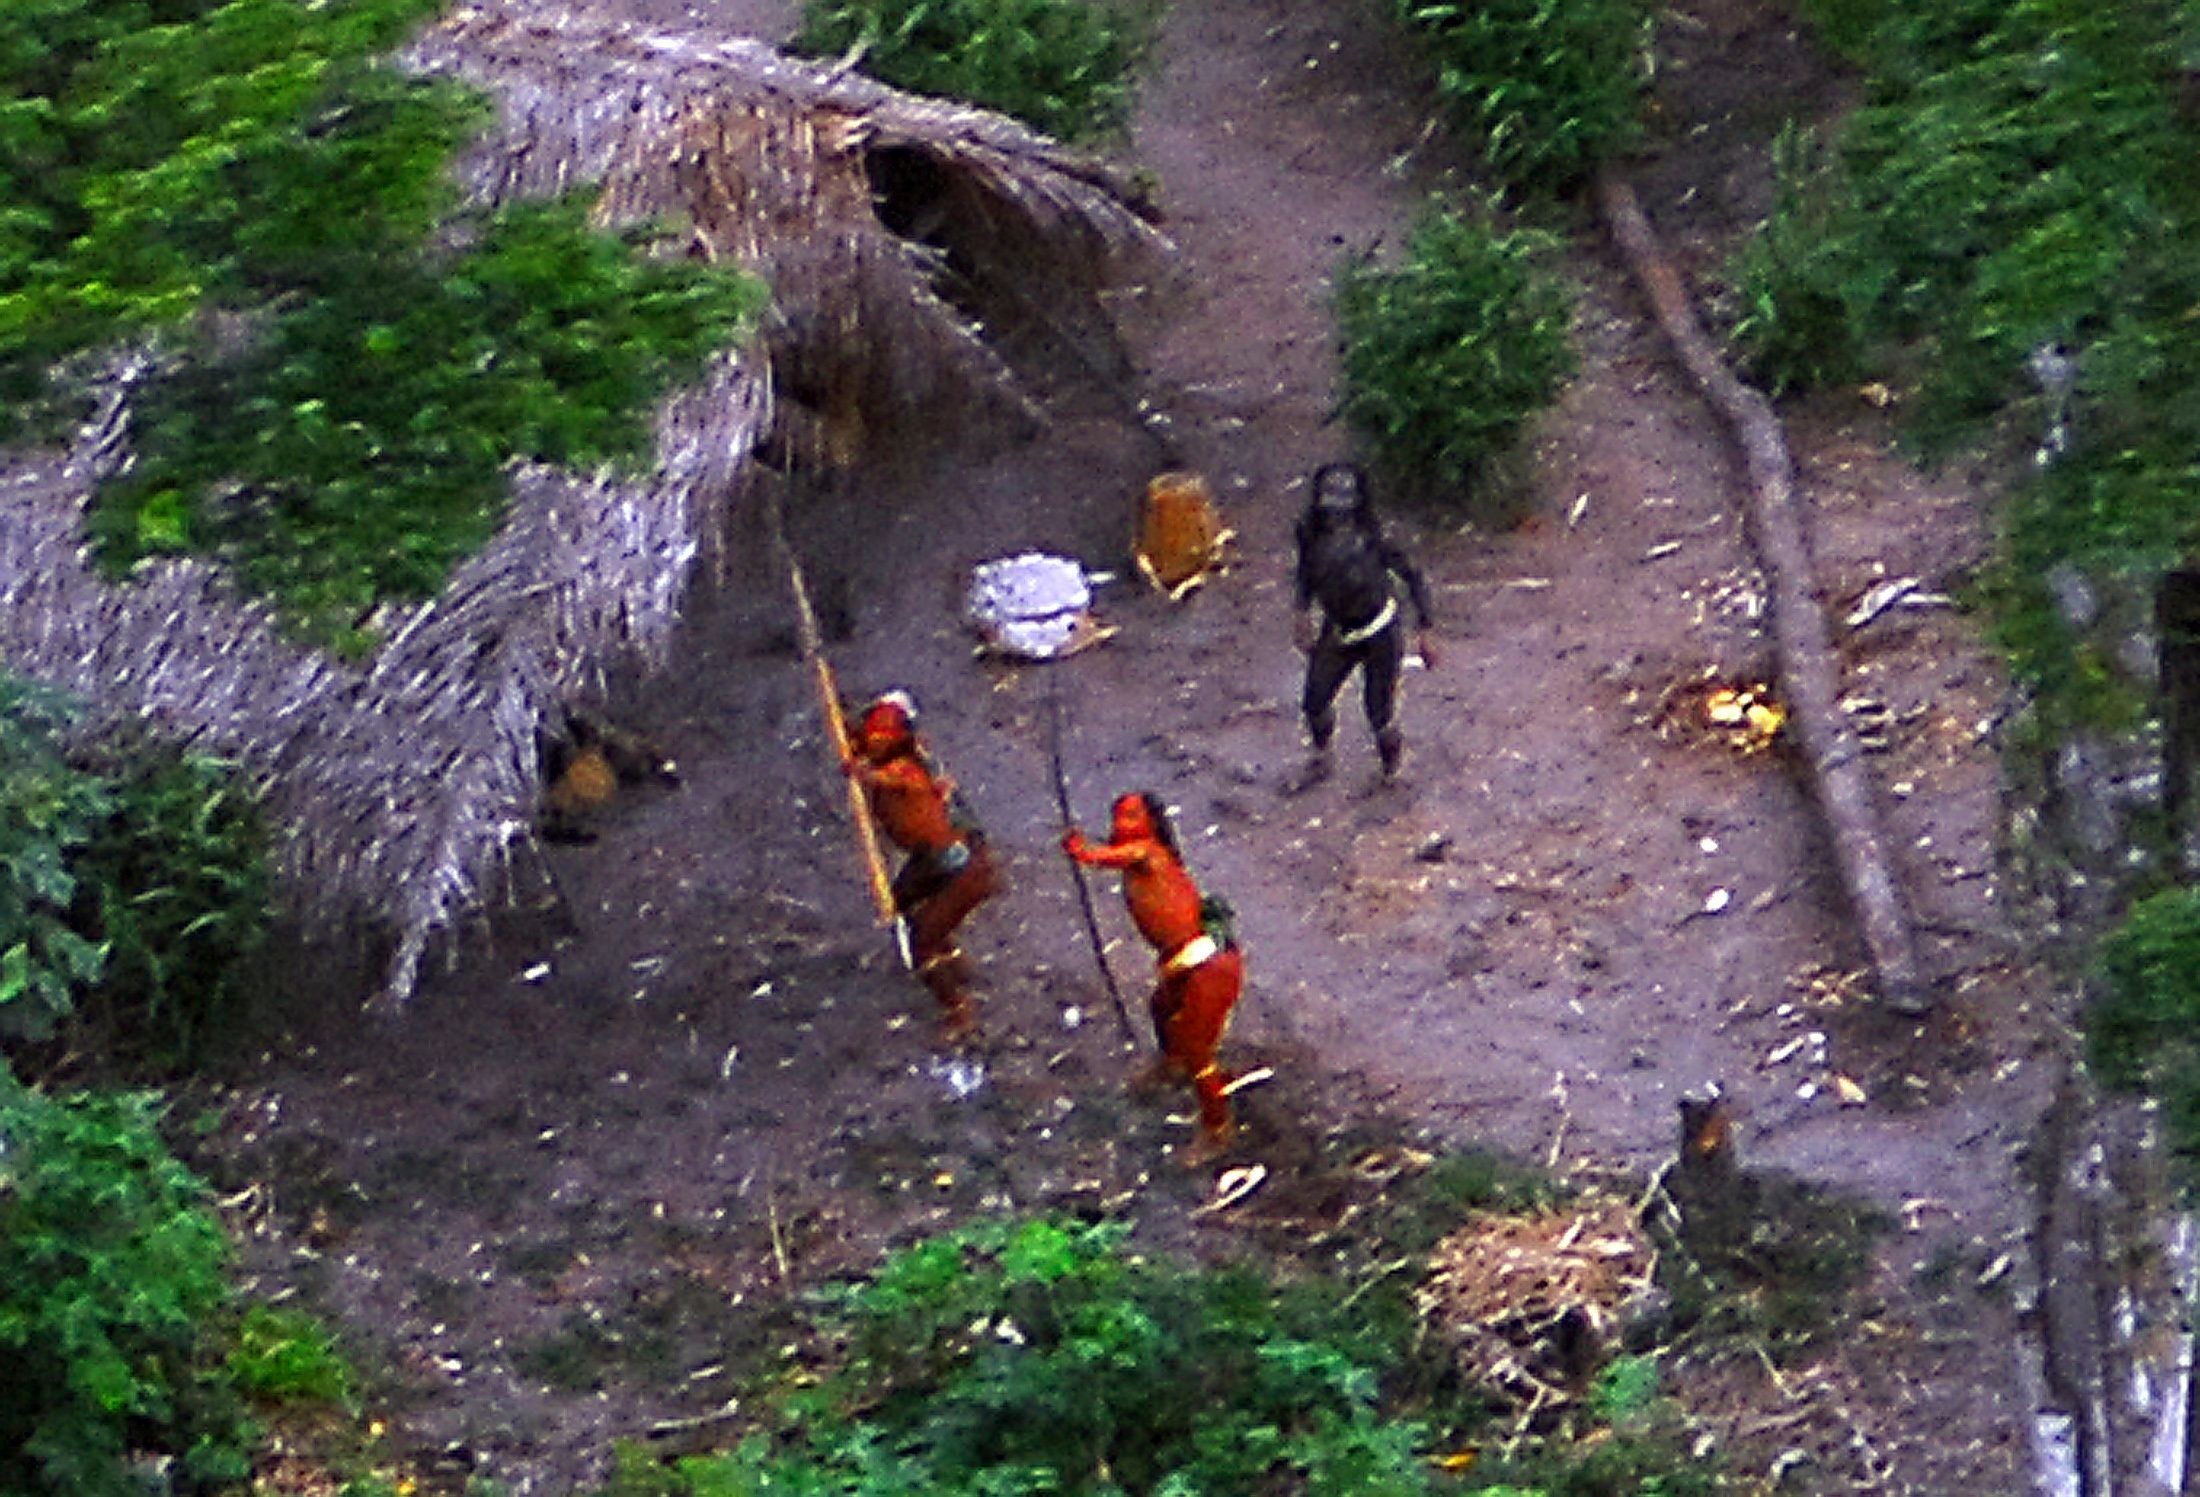 Genocide: Brazilian Gold Miners Boast of Massacring Uncontacted Amazon Tribe